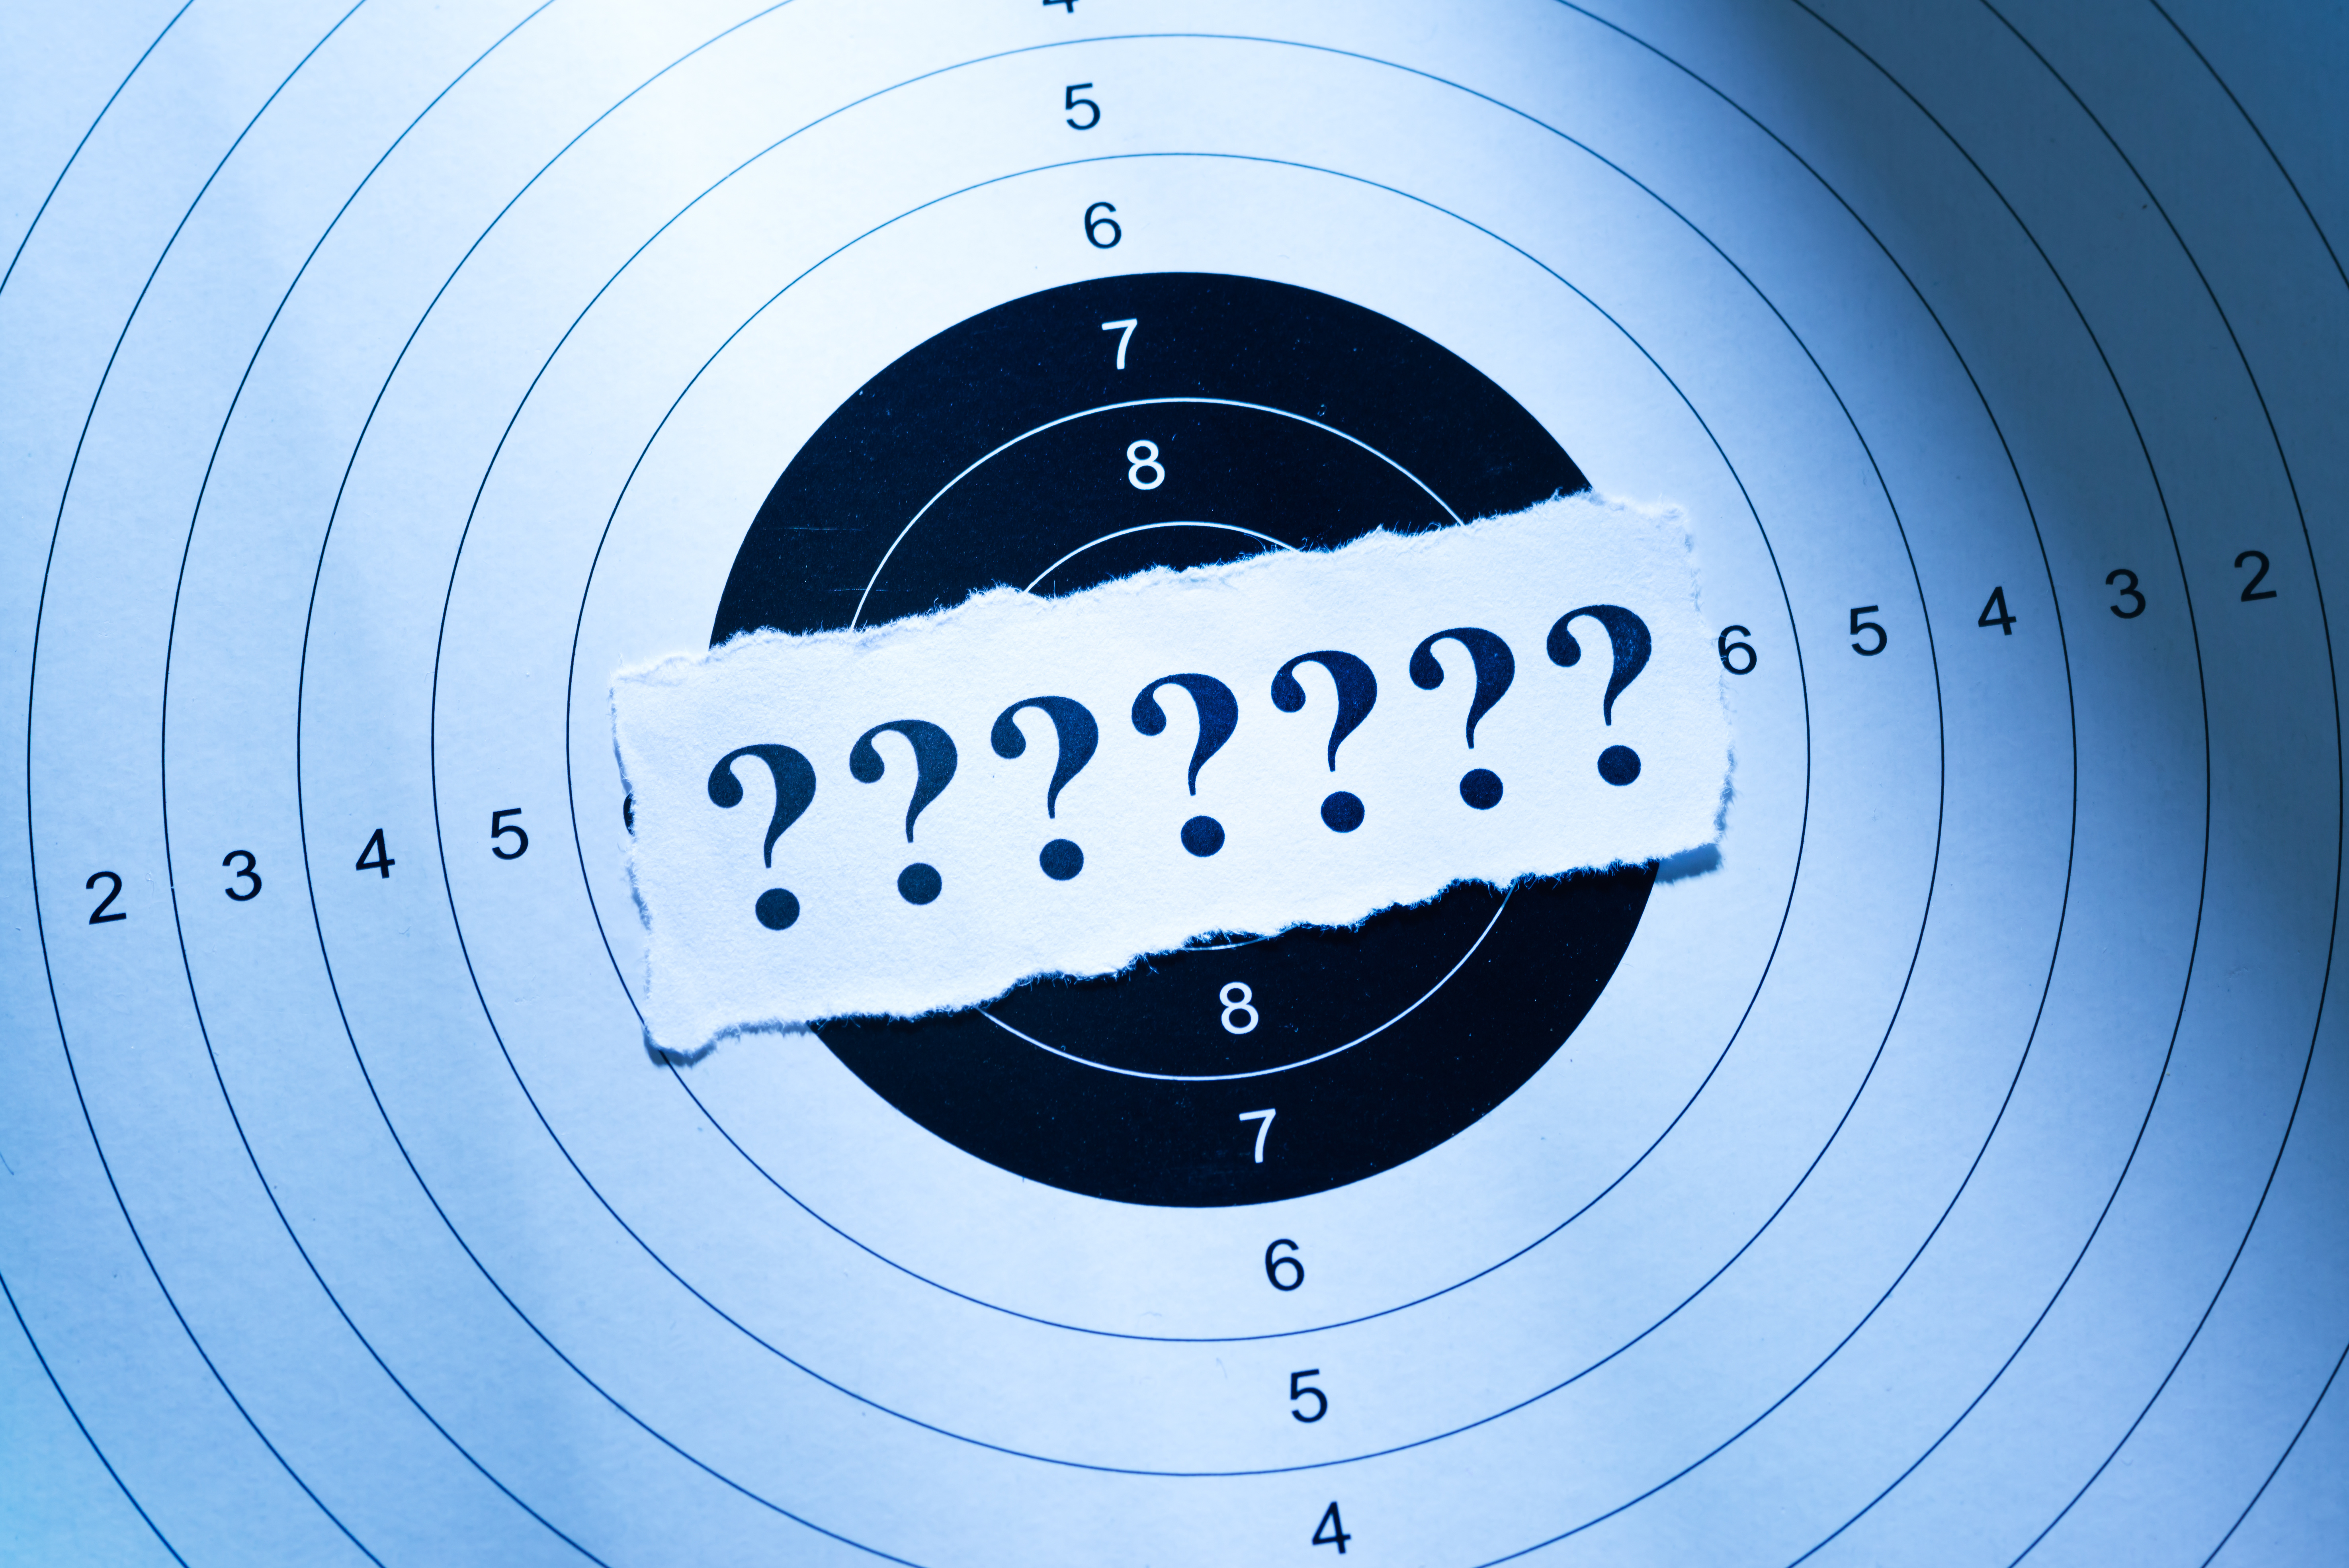 Seven consecutive question marks taped over a circular target.